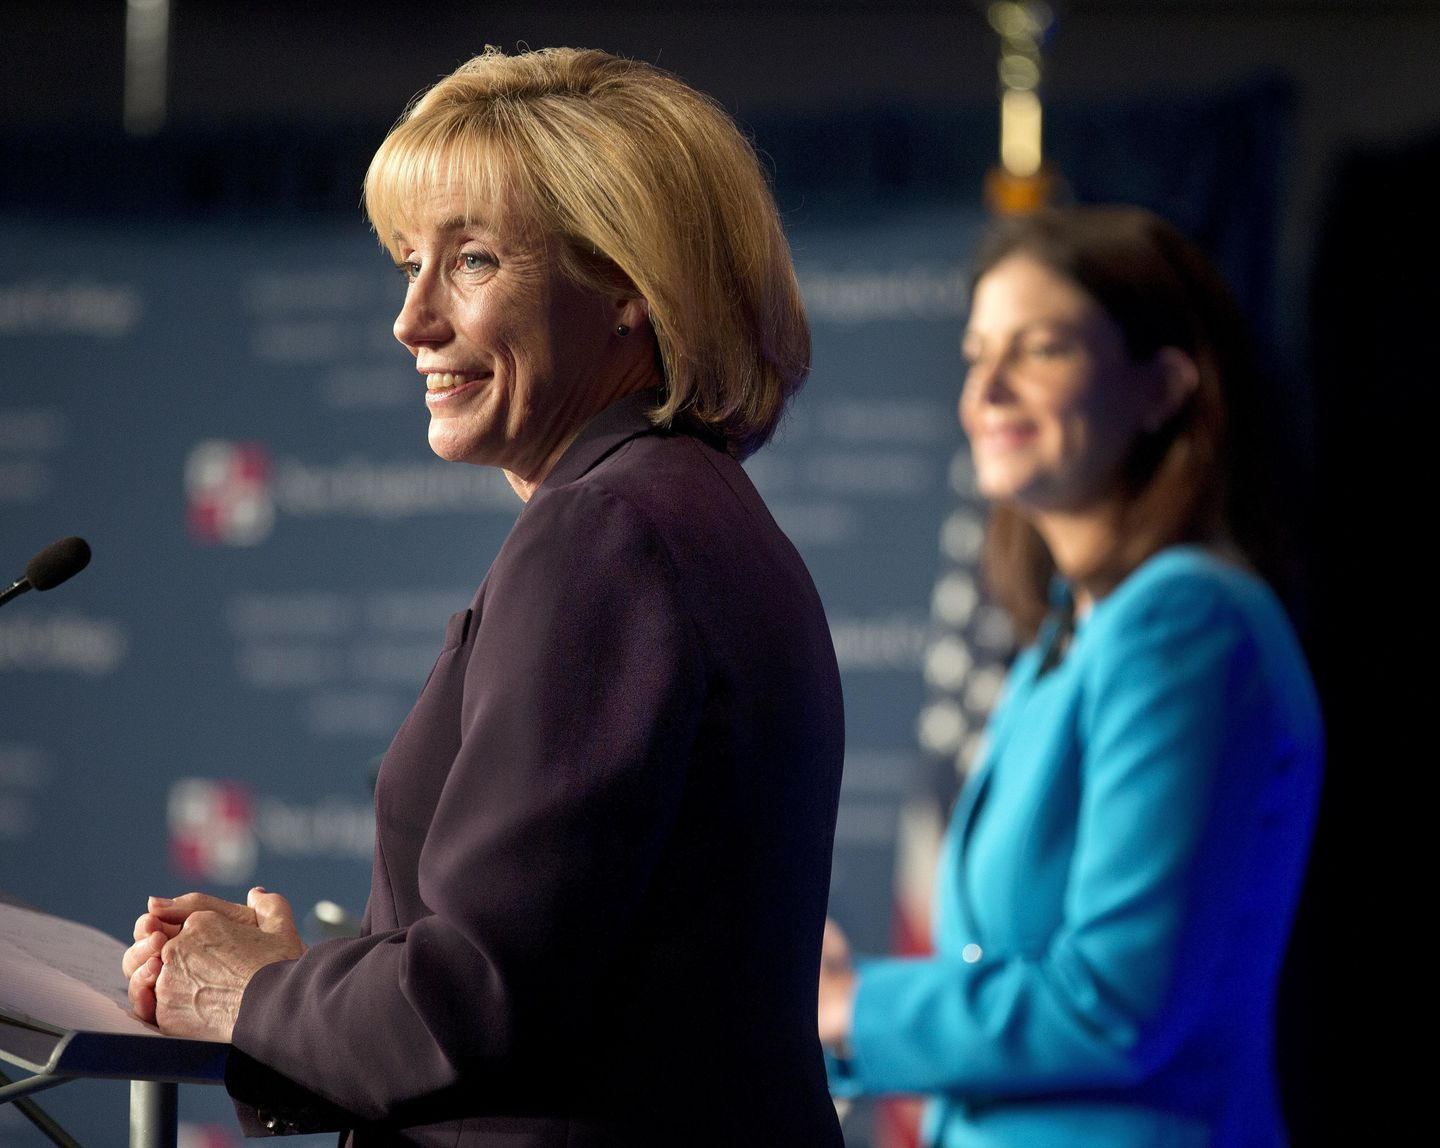 Maggie Hassan was known as partisan lawmaker - The Boston Globe